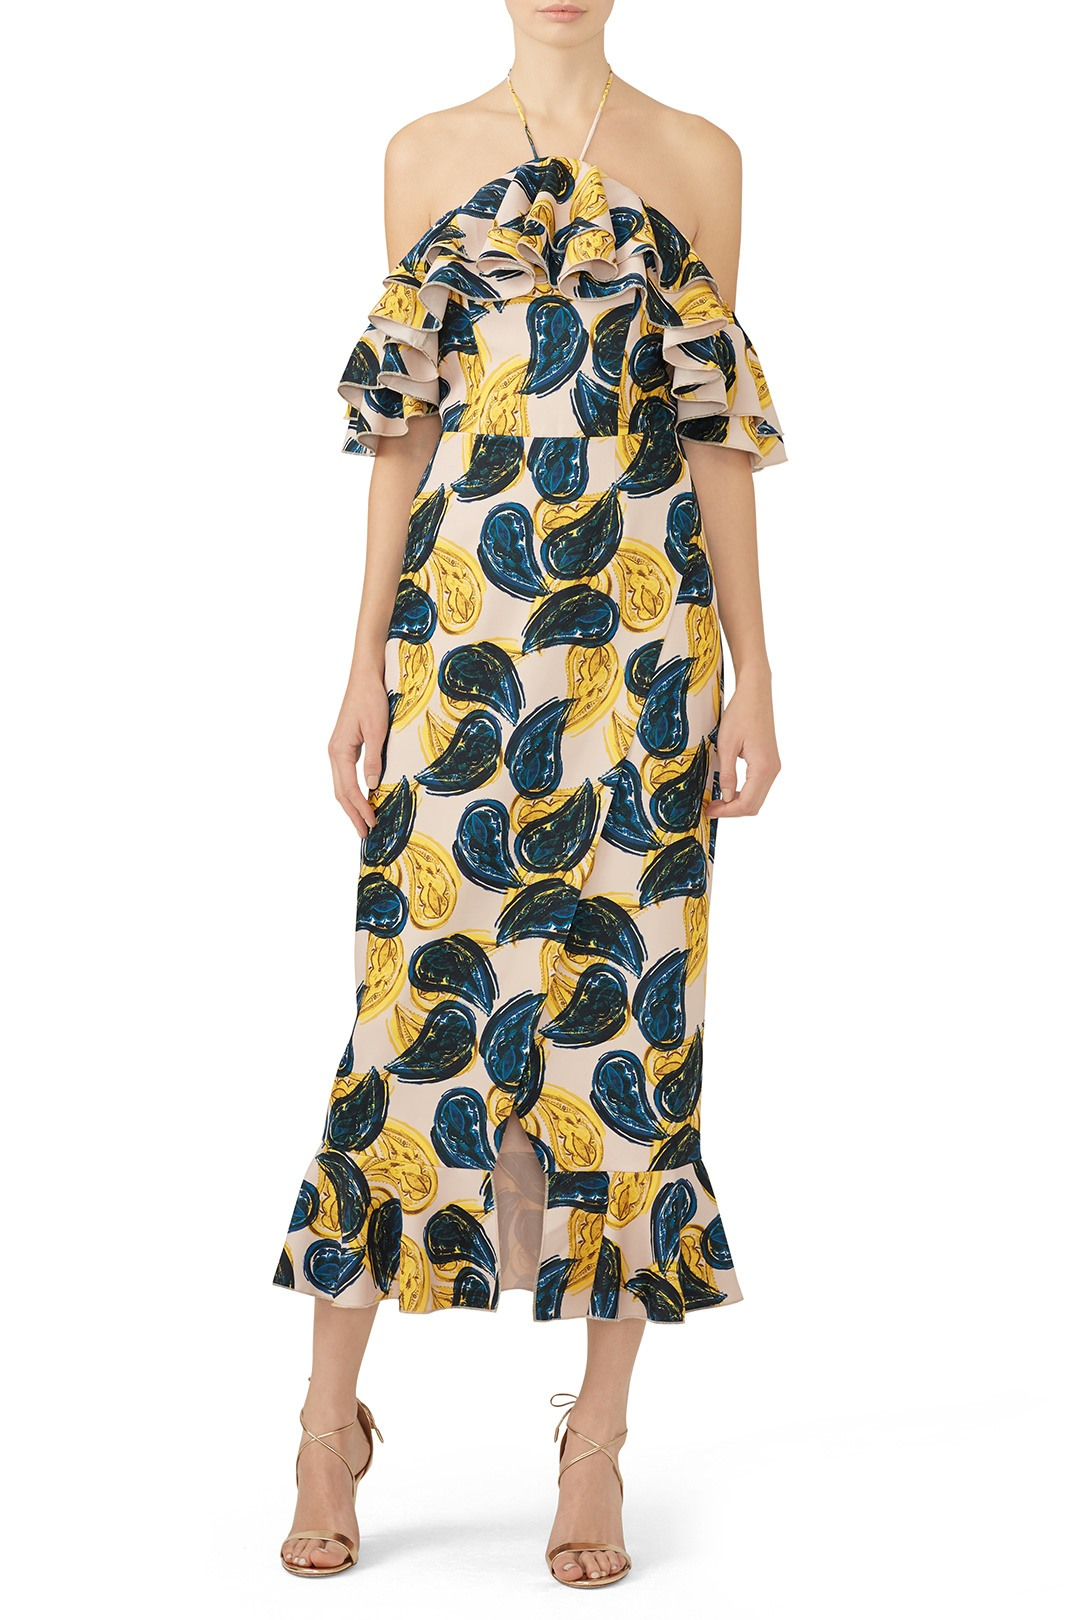 C/MEO COLLECTIVE Island Time Dress - I've always wanted to rent this dress…so someone invite me to a spring wedding!!